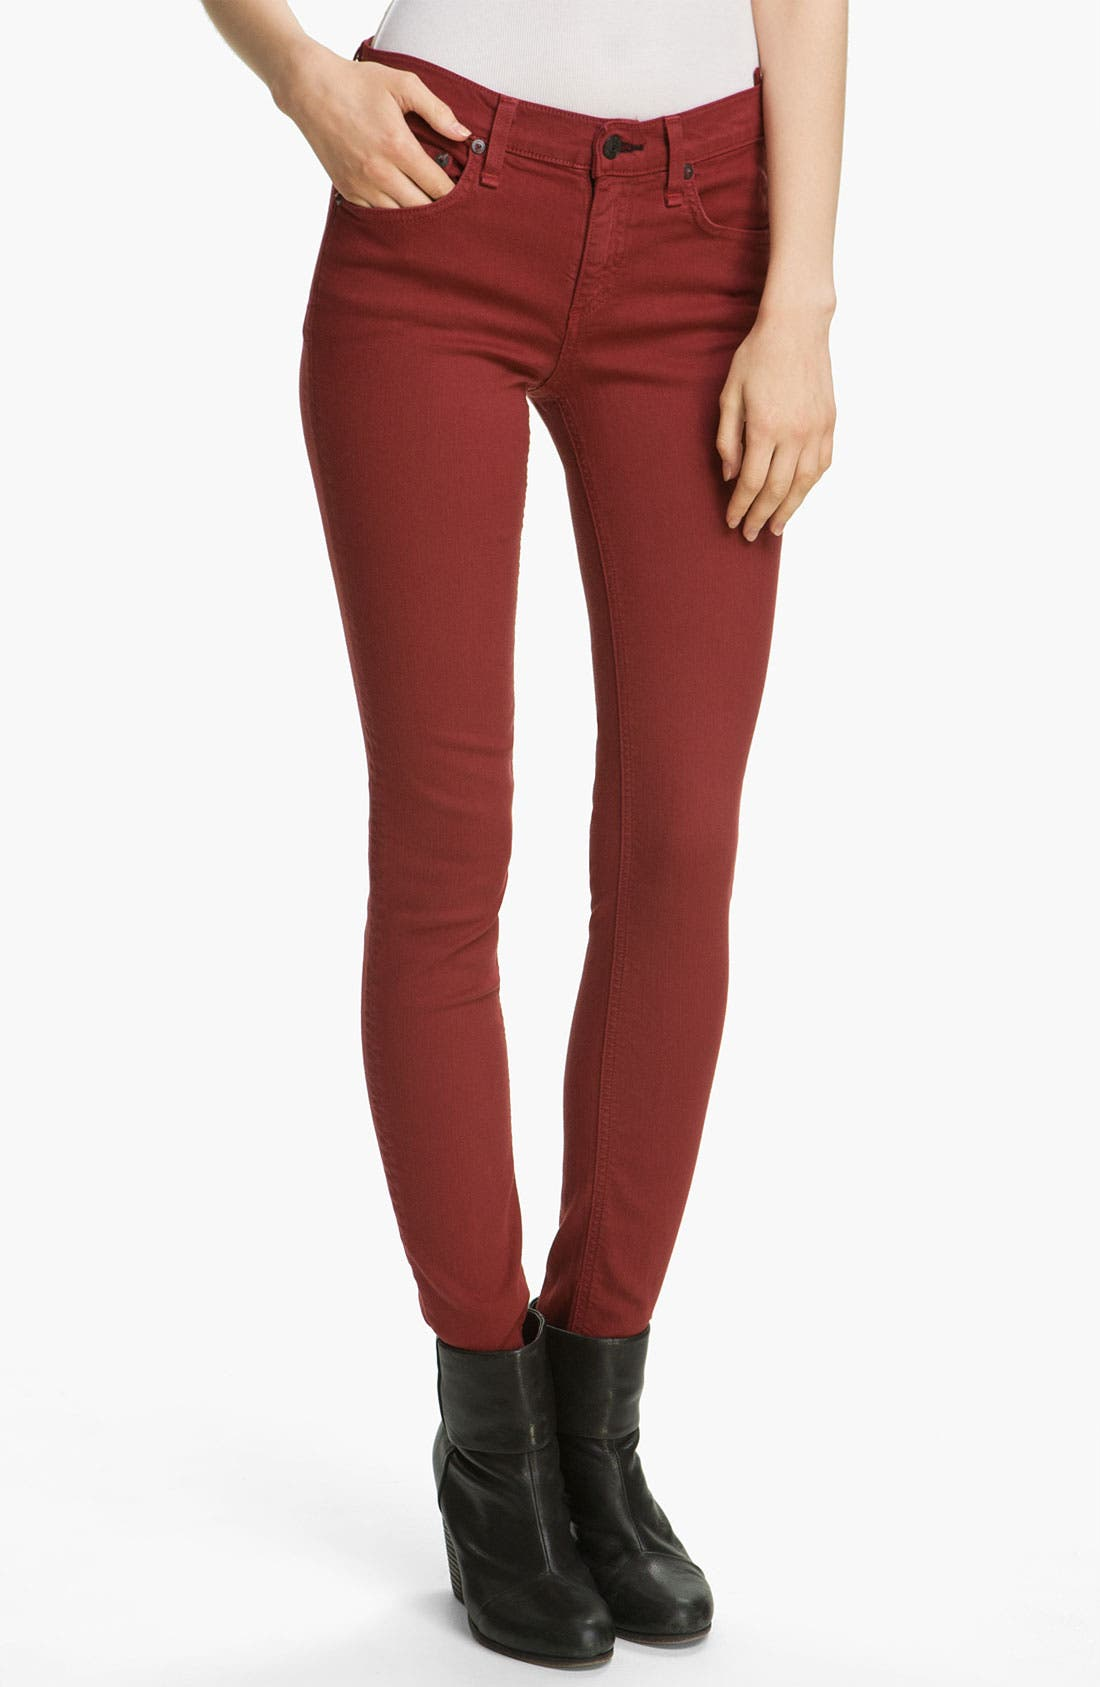 Alternate Image 1 Selected - rag & bone/JEAN Skinny Stretch Jeans